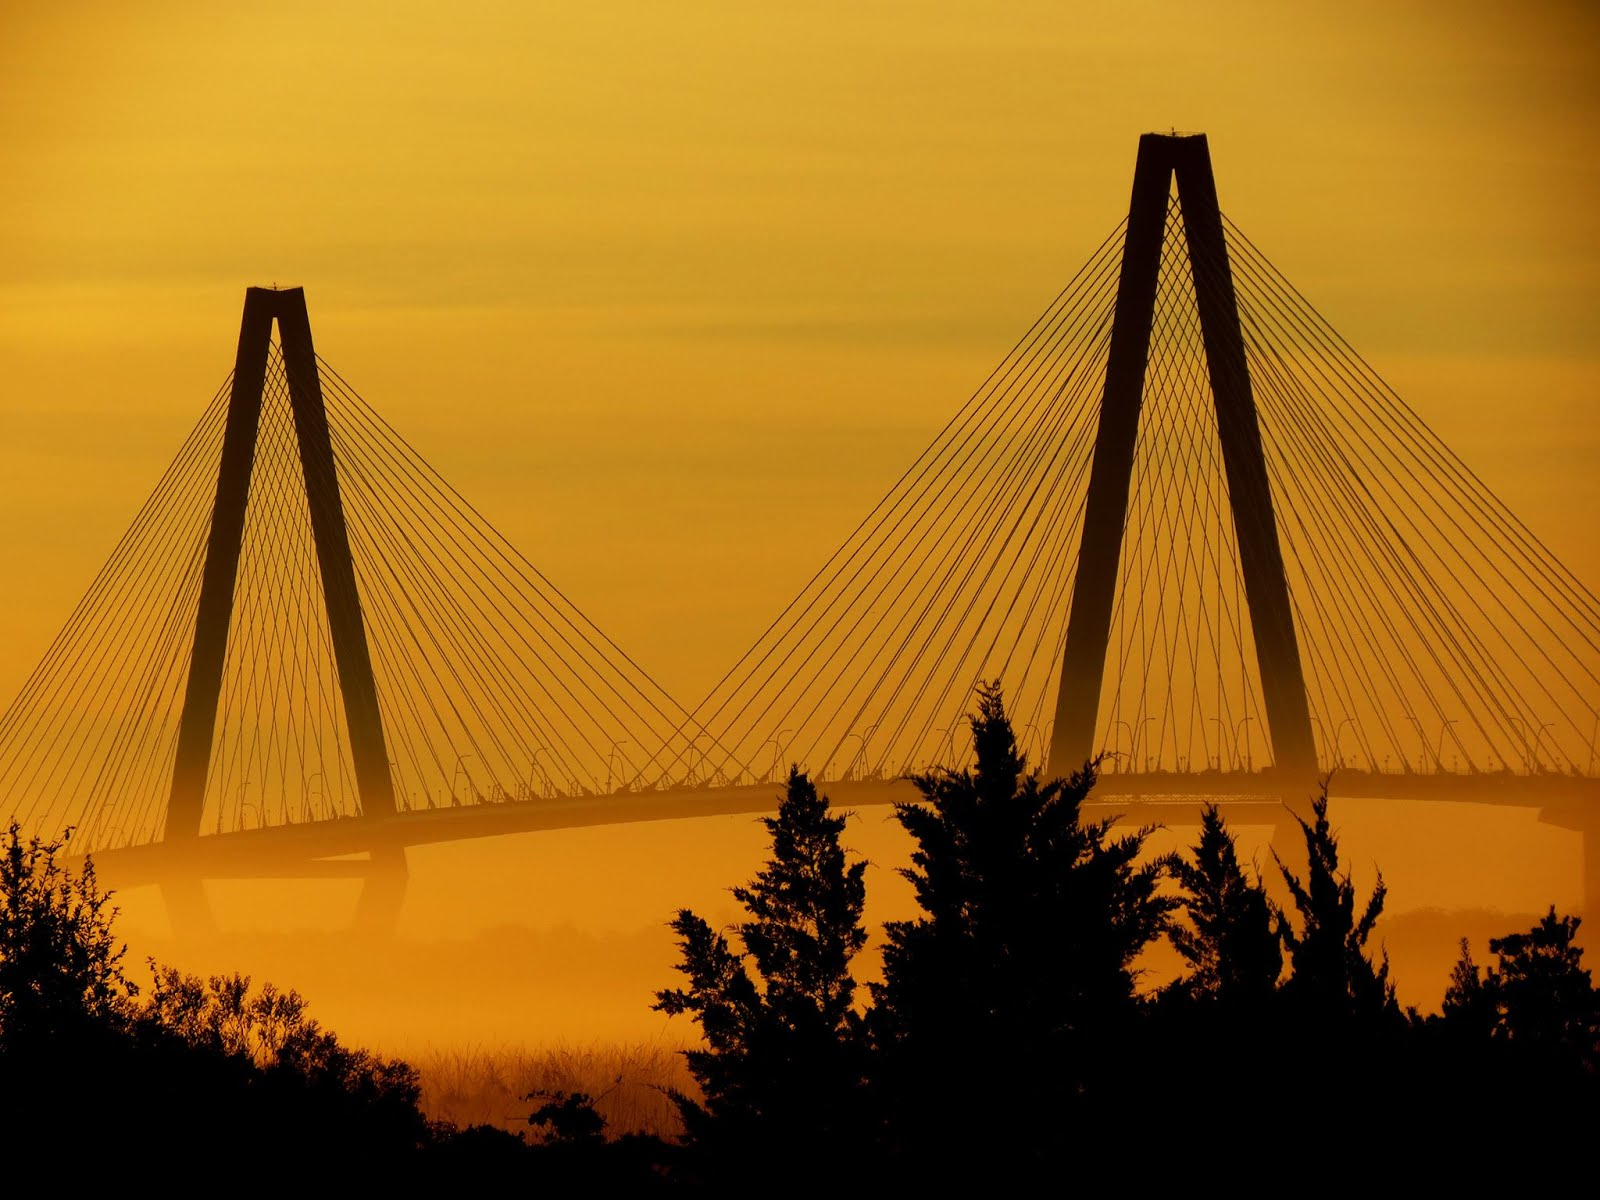 Sunrise Bathes the Ravenel Bridge